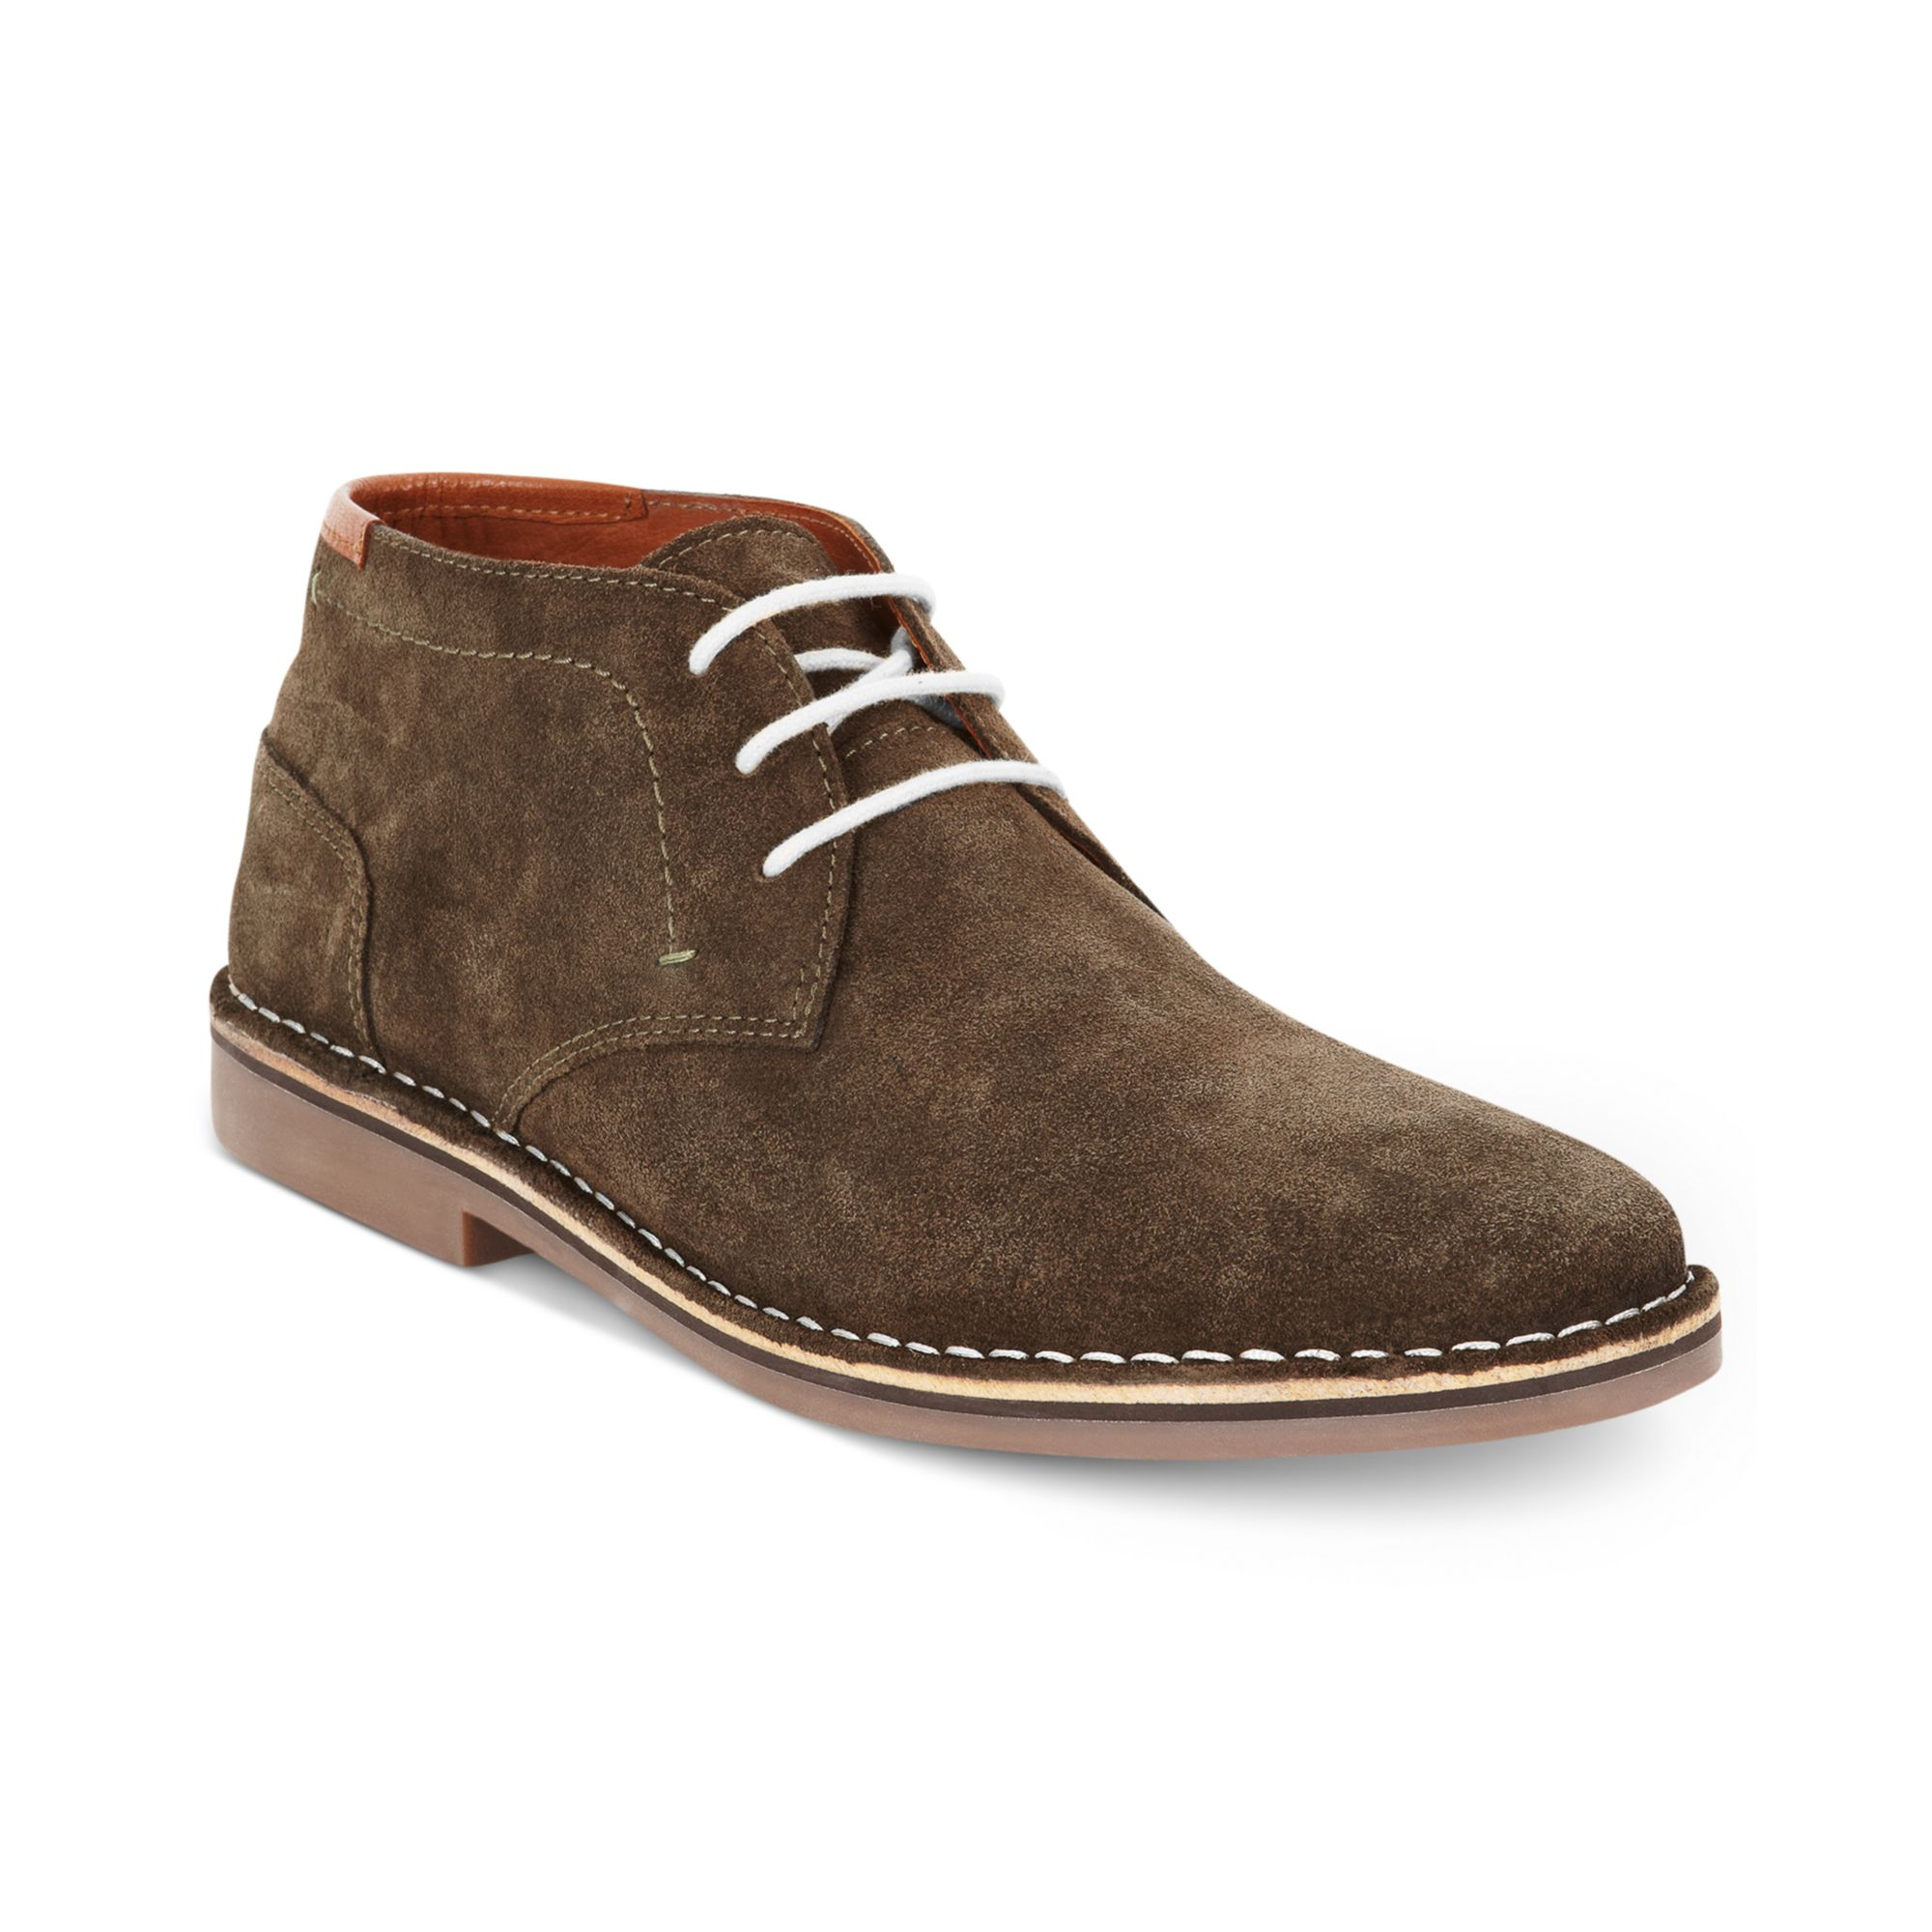 Kenneth Cole Reaction Shoes. Ready to hit the town and walk out in style? Whether it's out on a hike, a day at the office, or a relaxing weekend at home, Kenneth Cole Reaction shoes .